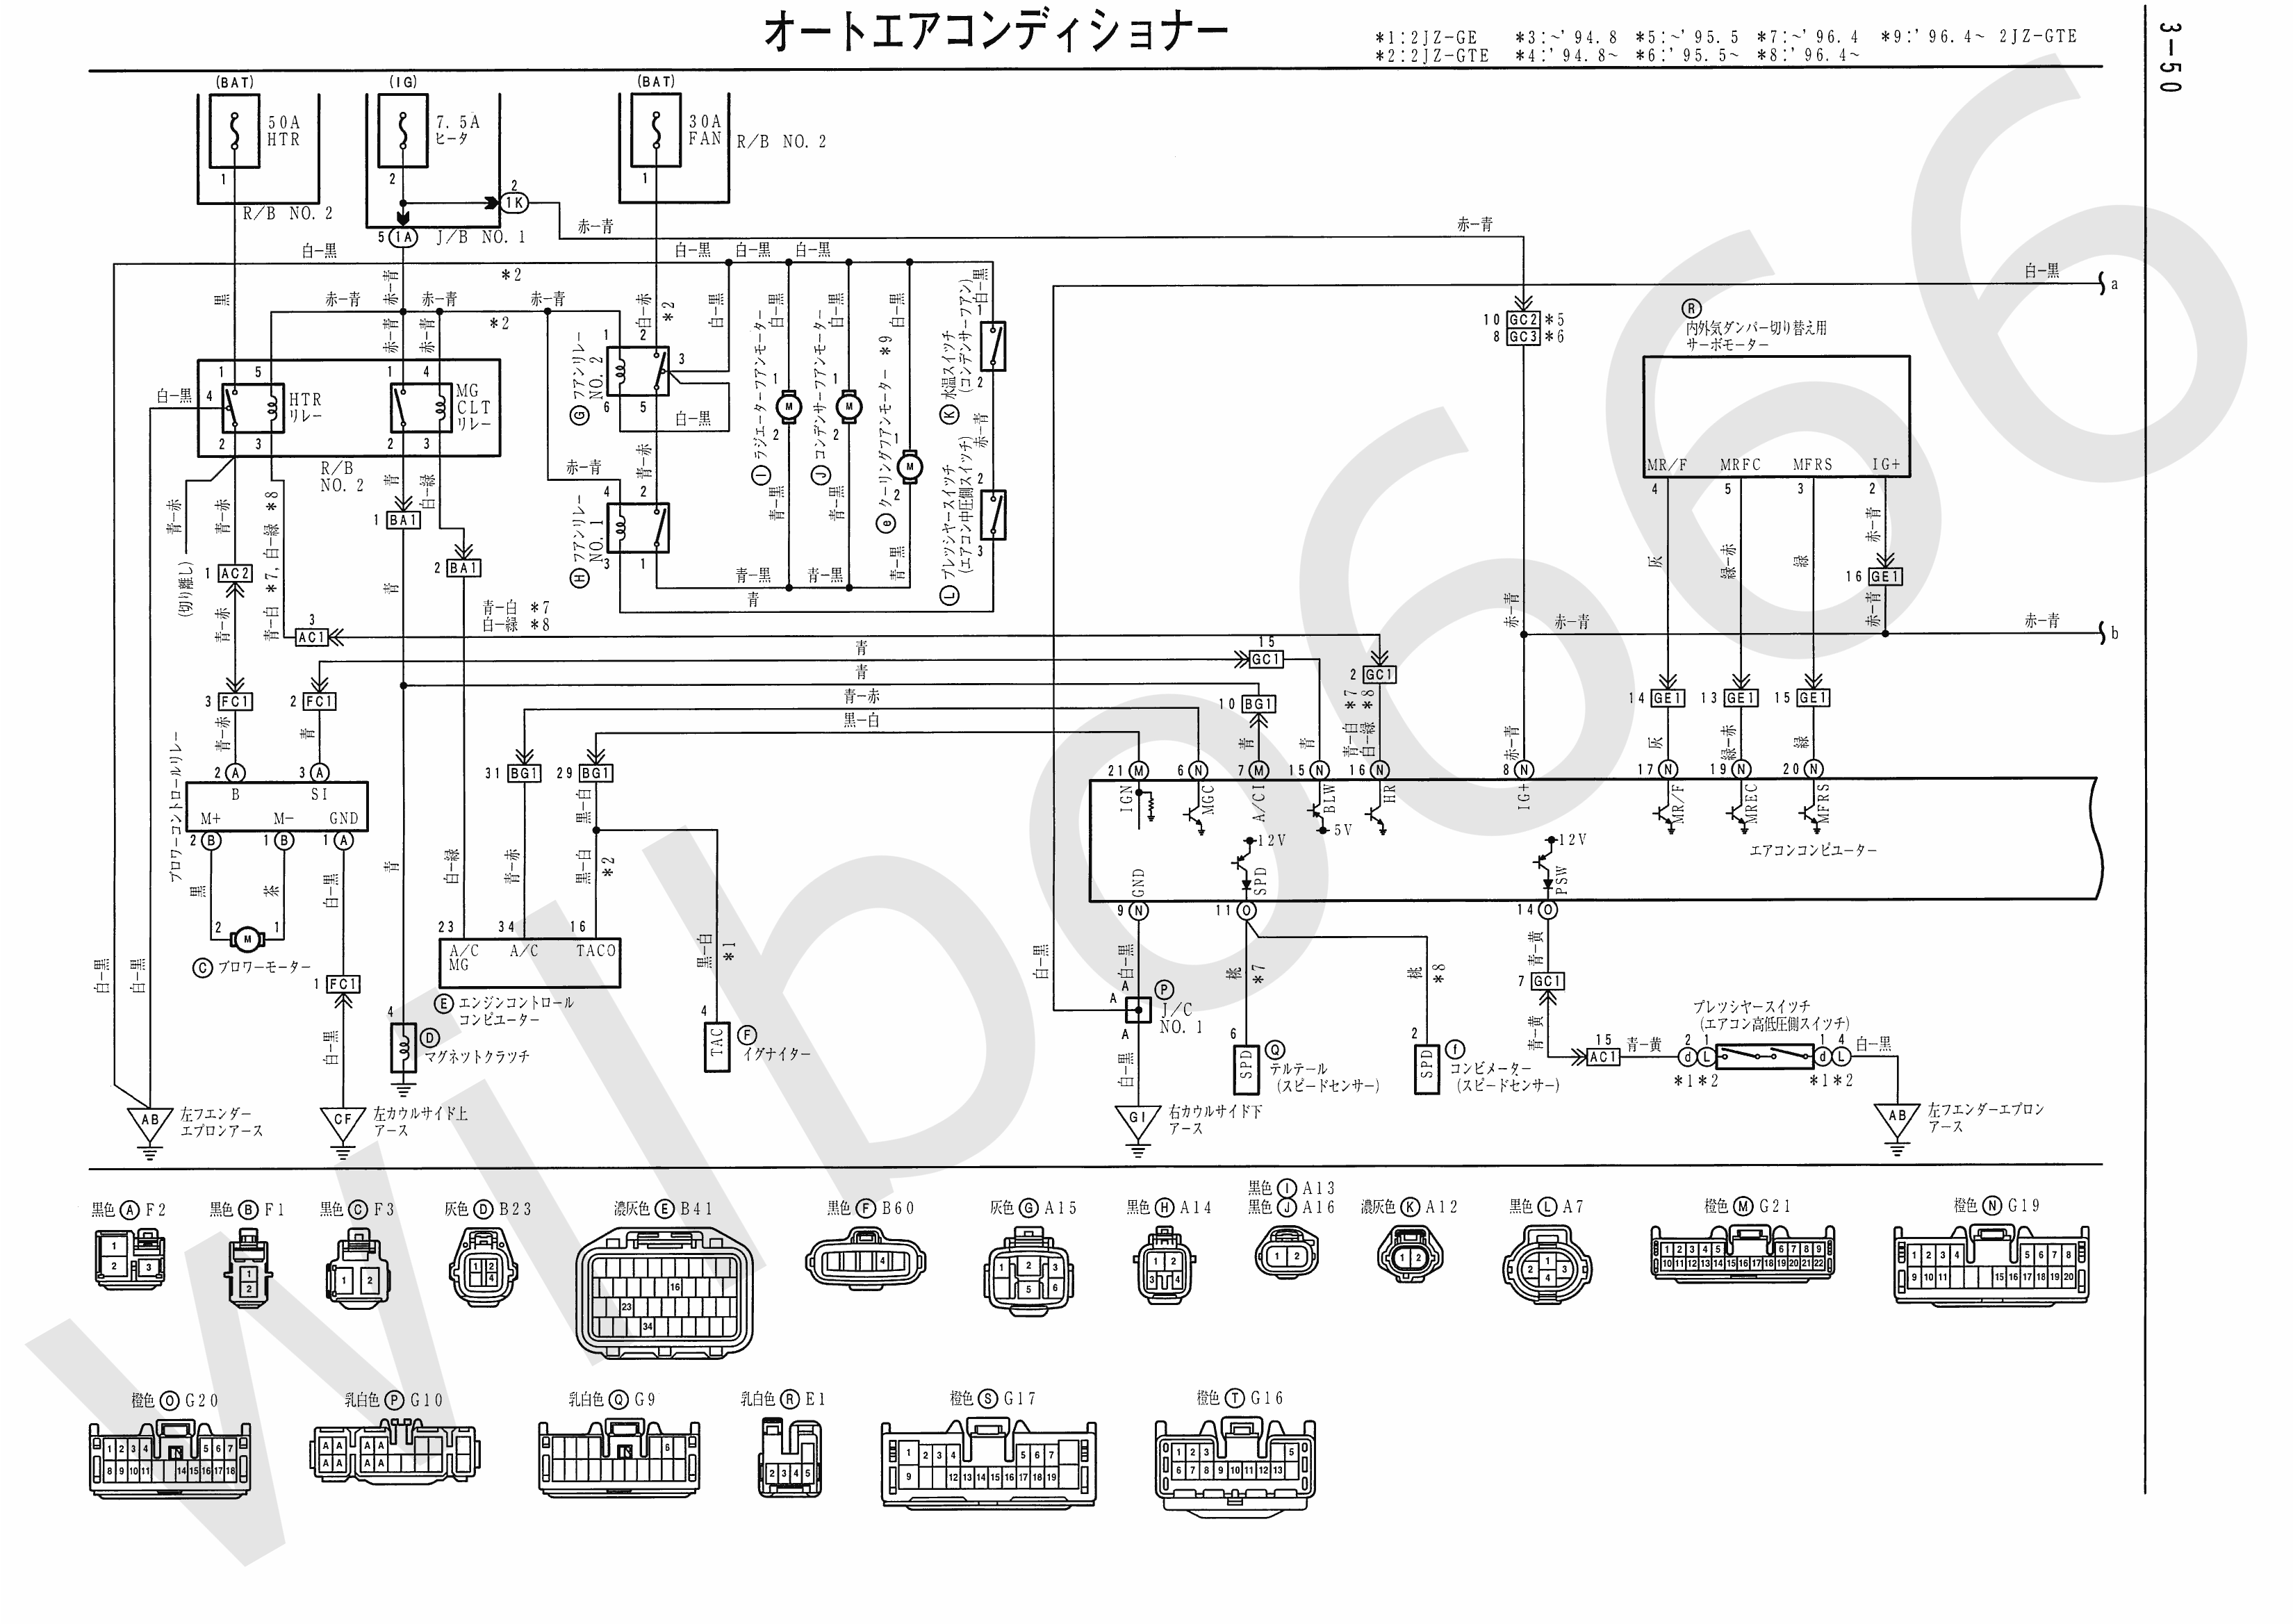 JZA80 Electrical Wiring Diagram 6742505 3 50?ssl\\\=1 2jzgte aem ems write up on ems ecu wiring diagram on thread 2jzgte aem ems 4 wiring diagram at nearapp.co